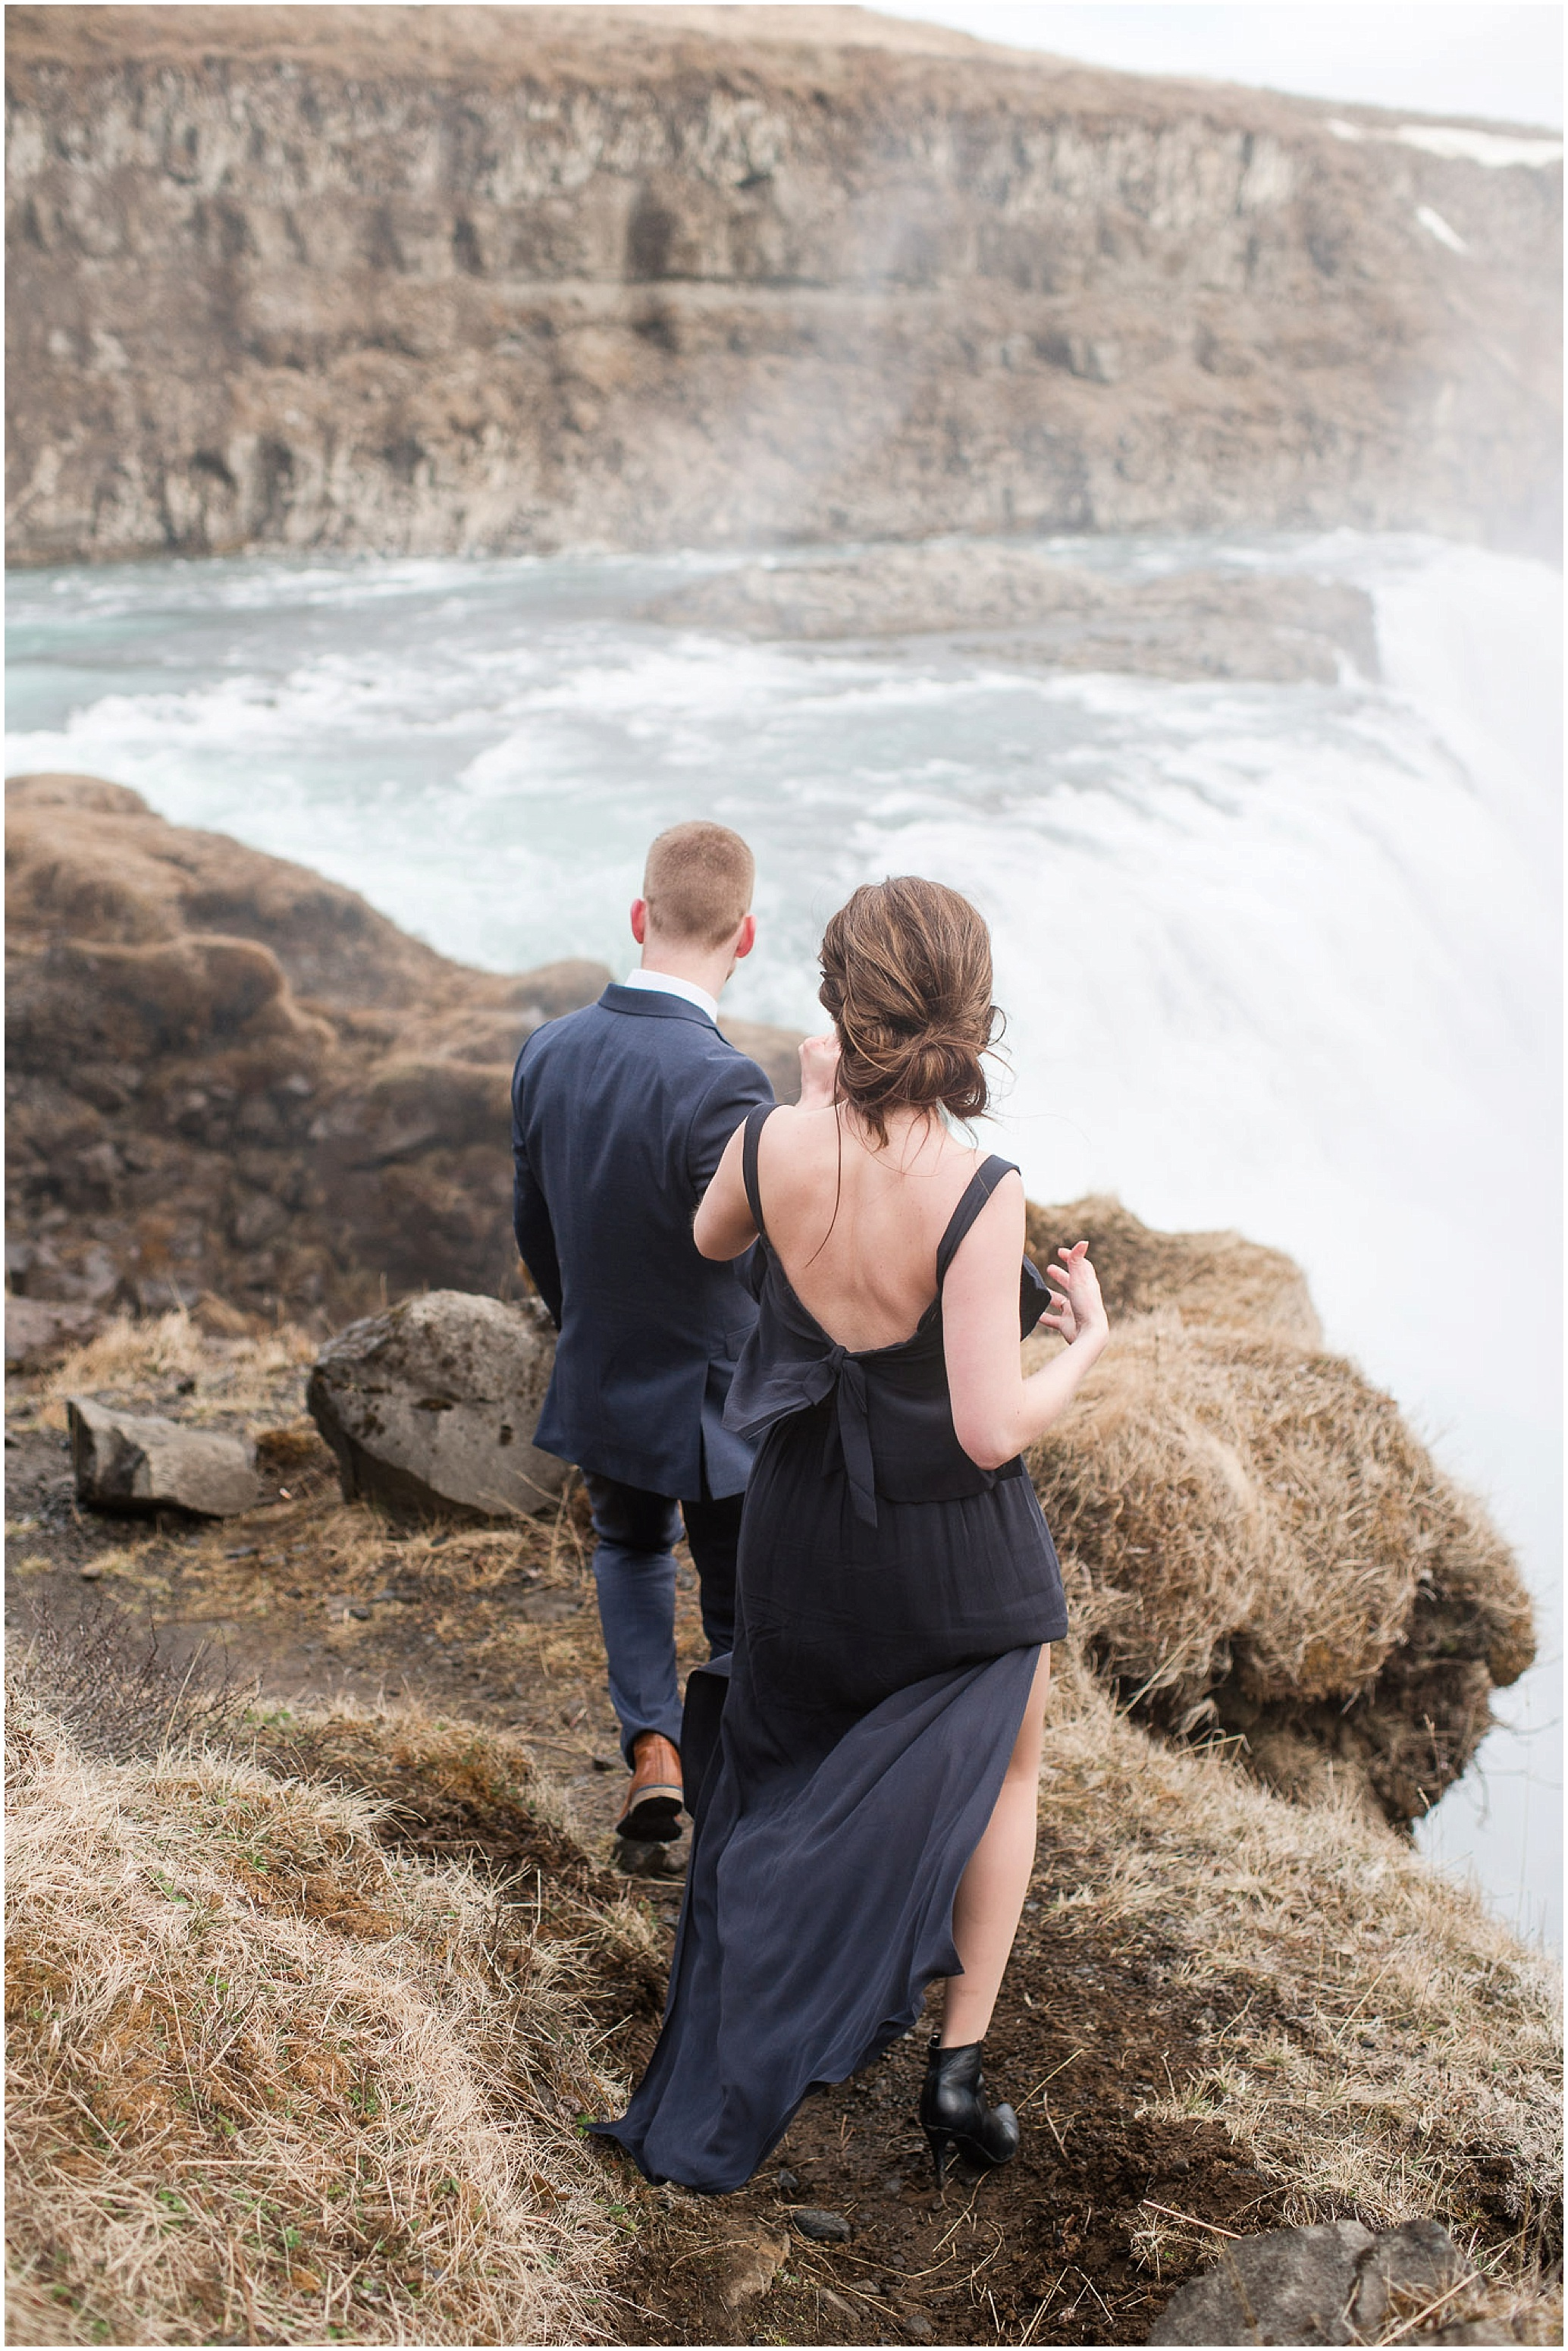 Hannah Leigh Photography Iceland Elopement Photographer_0128.jpg